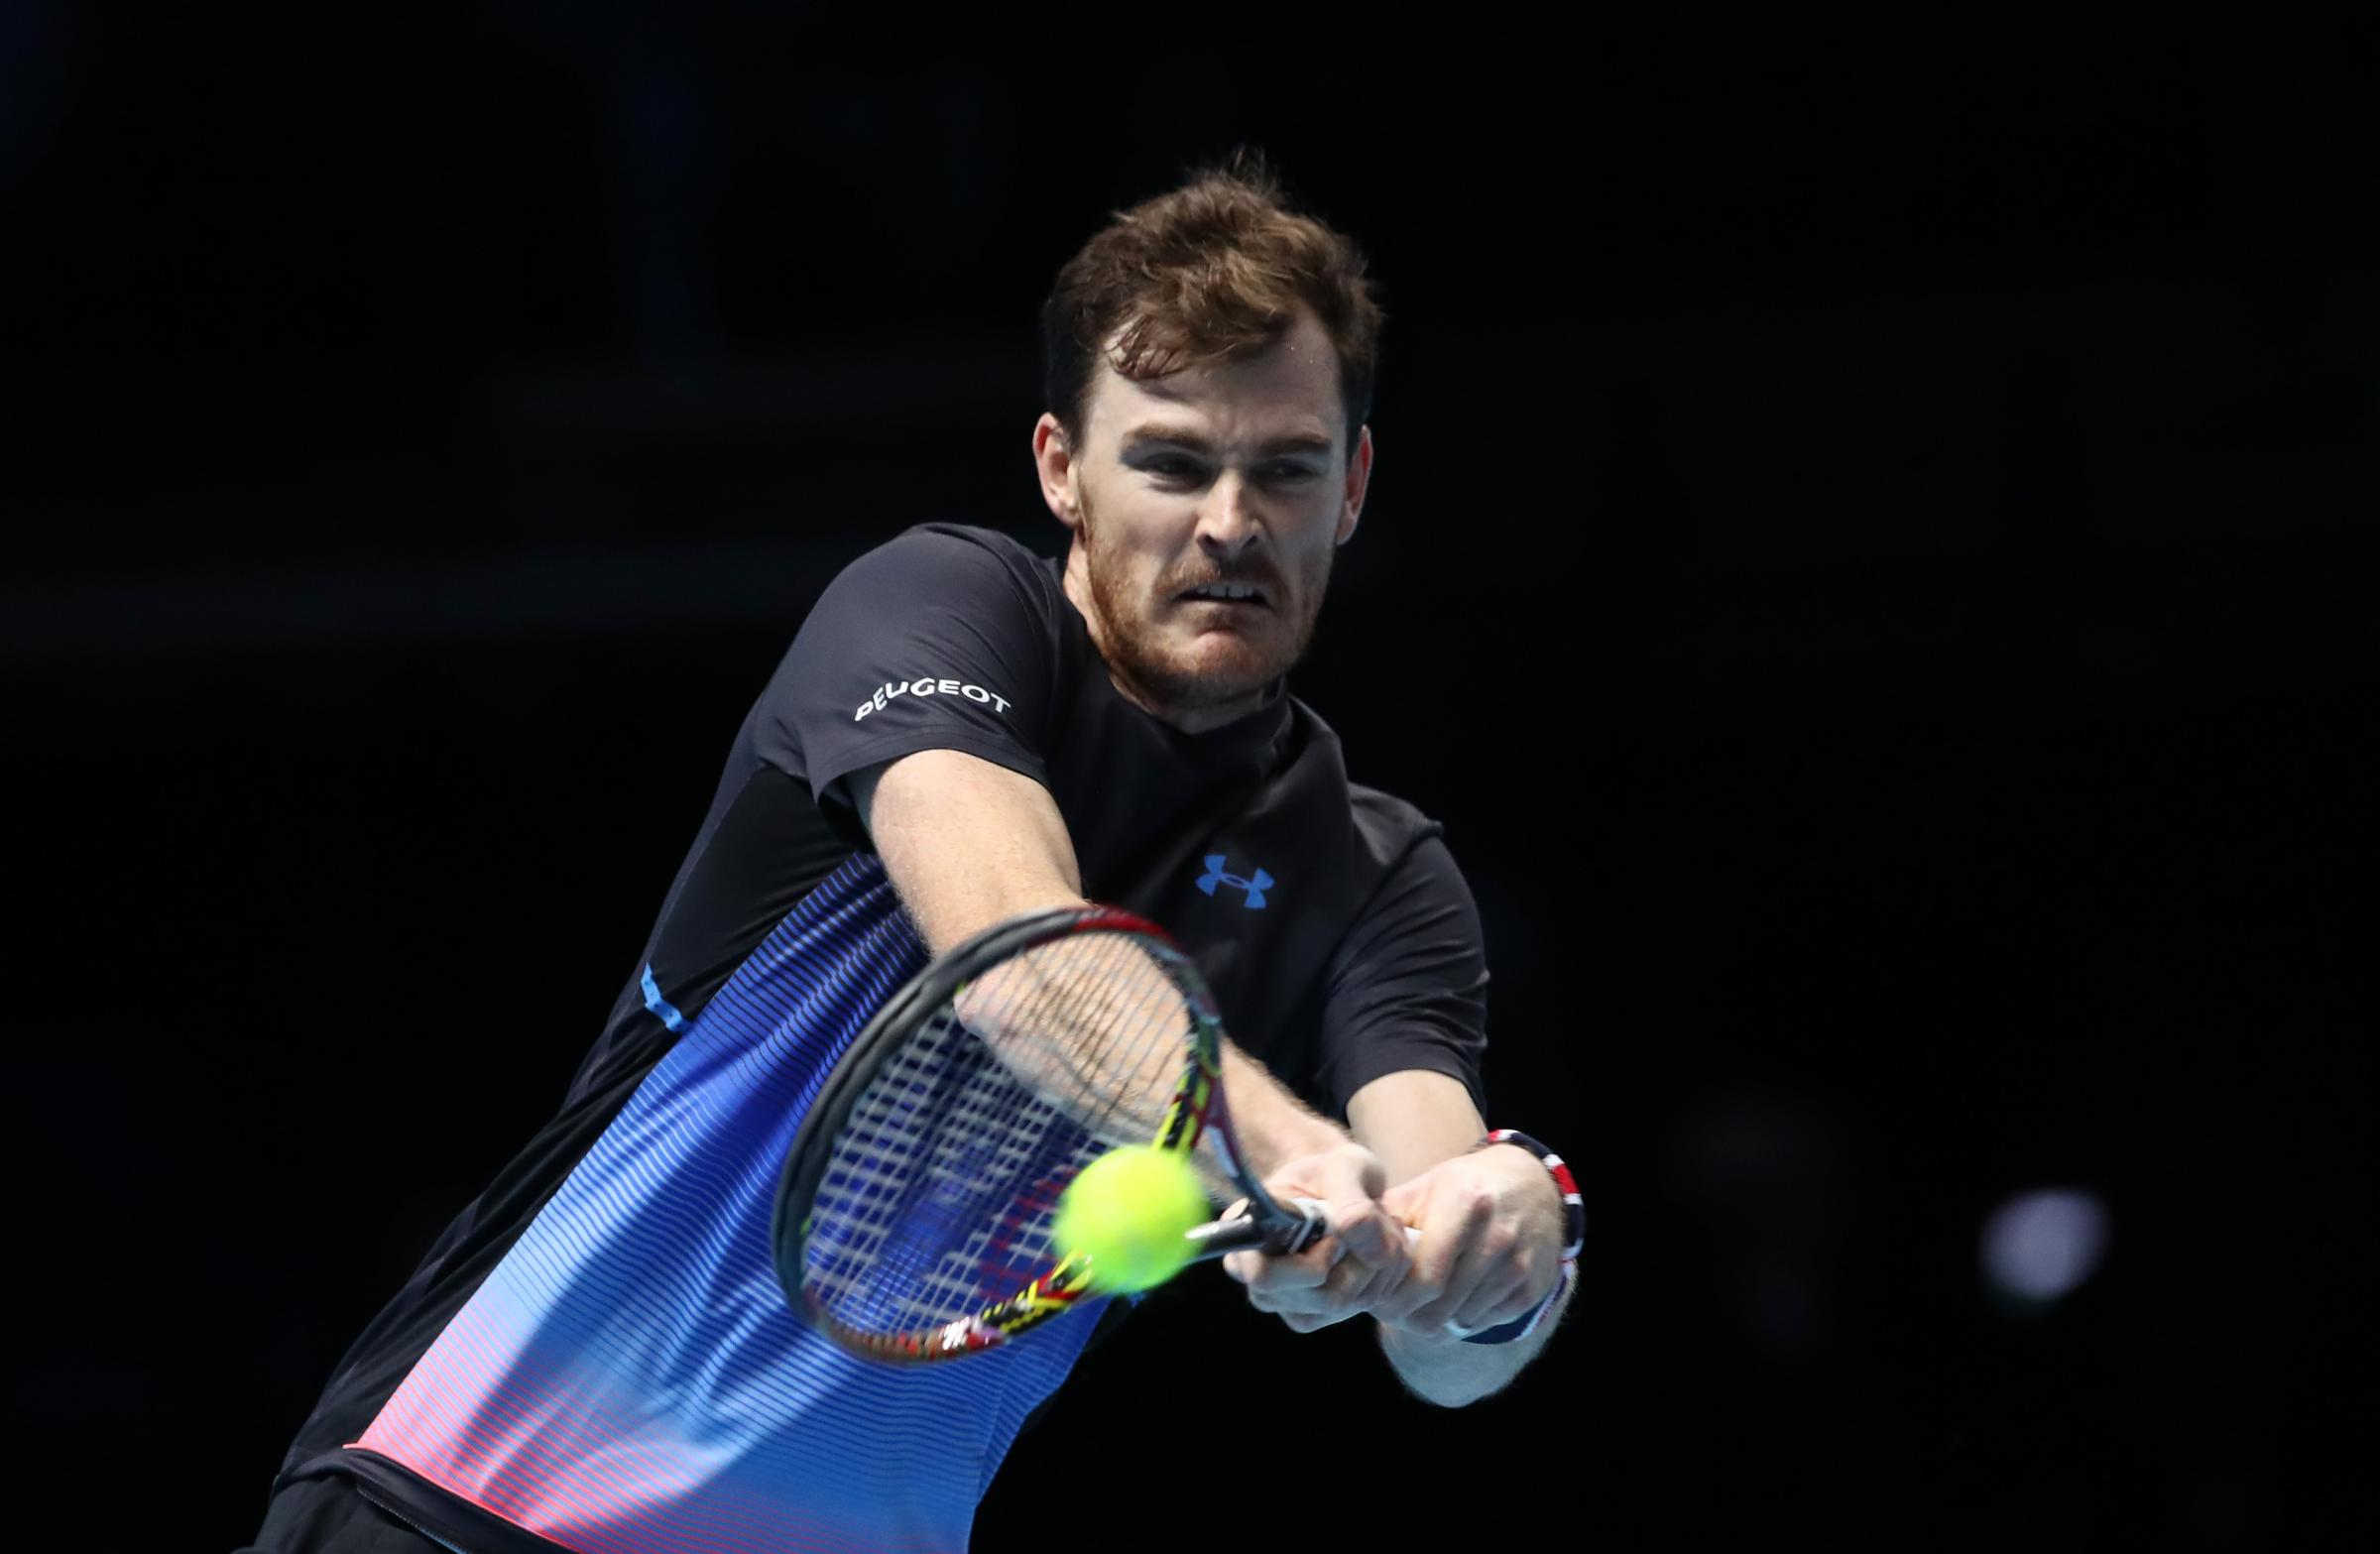 LONDON, ENGLAND - NOVEMBER 17: Jamie Murray of Great Britain plays a backhand shot in his doubles semi finals match against Mike Bryan and Jack Sock of The United States during Day Seven of the Nitto ATP Finals at The O2 Arena on November 17, 2018 in Lond